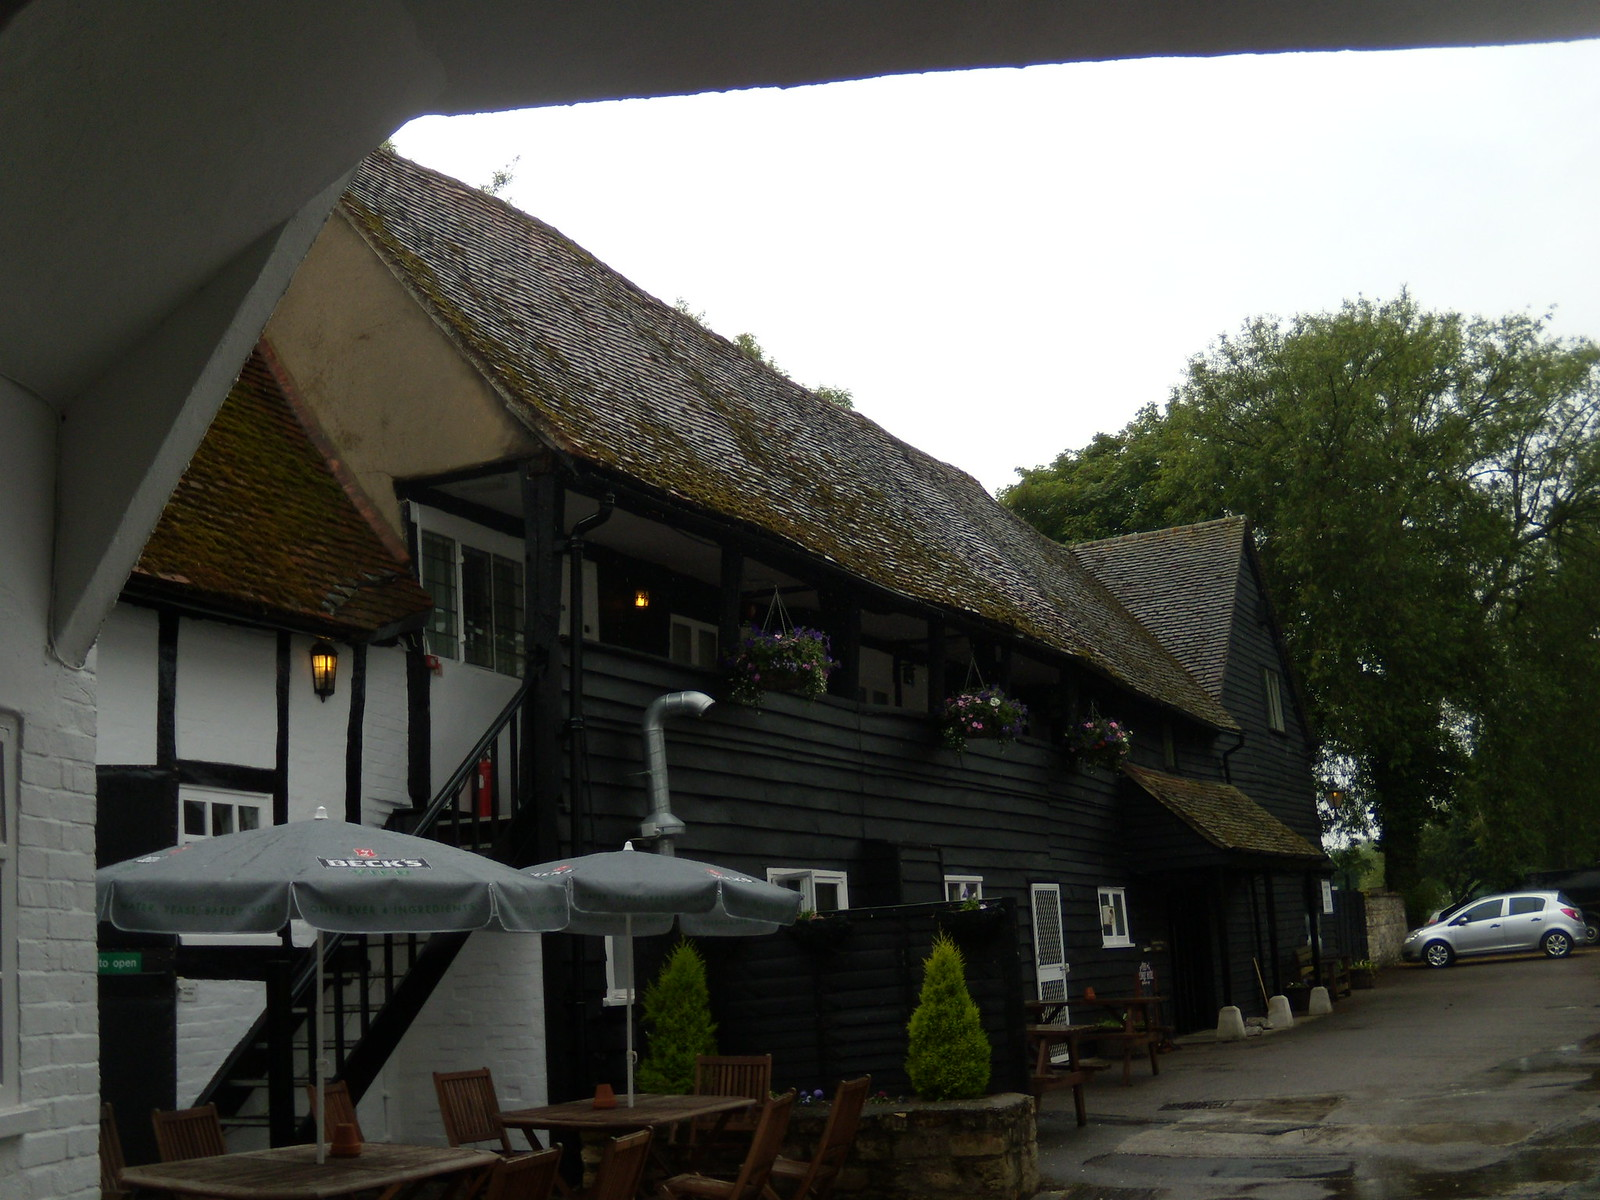 The George, Dorchester Appleford Circular